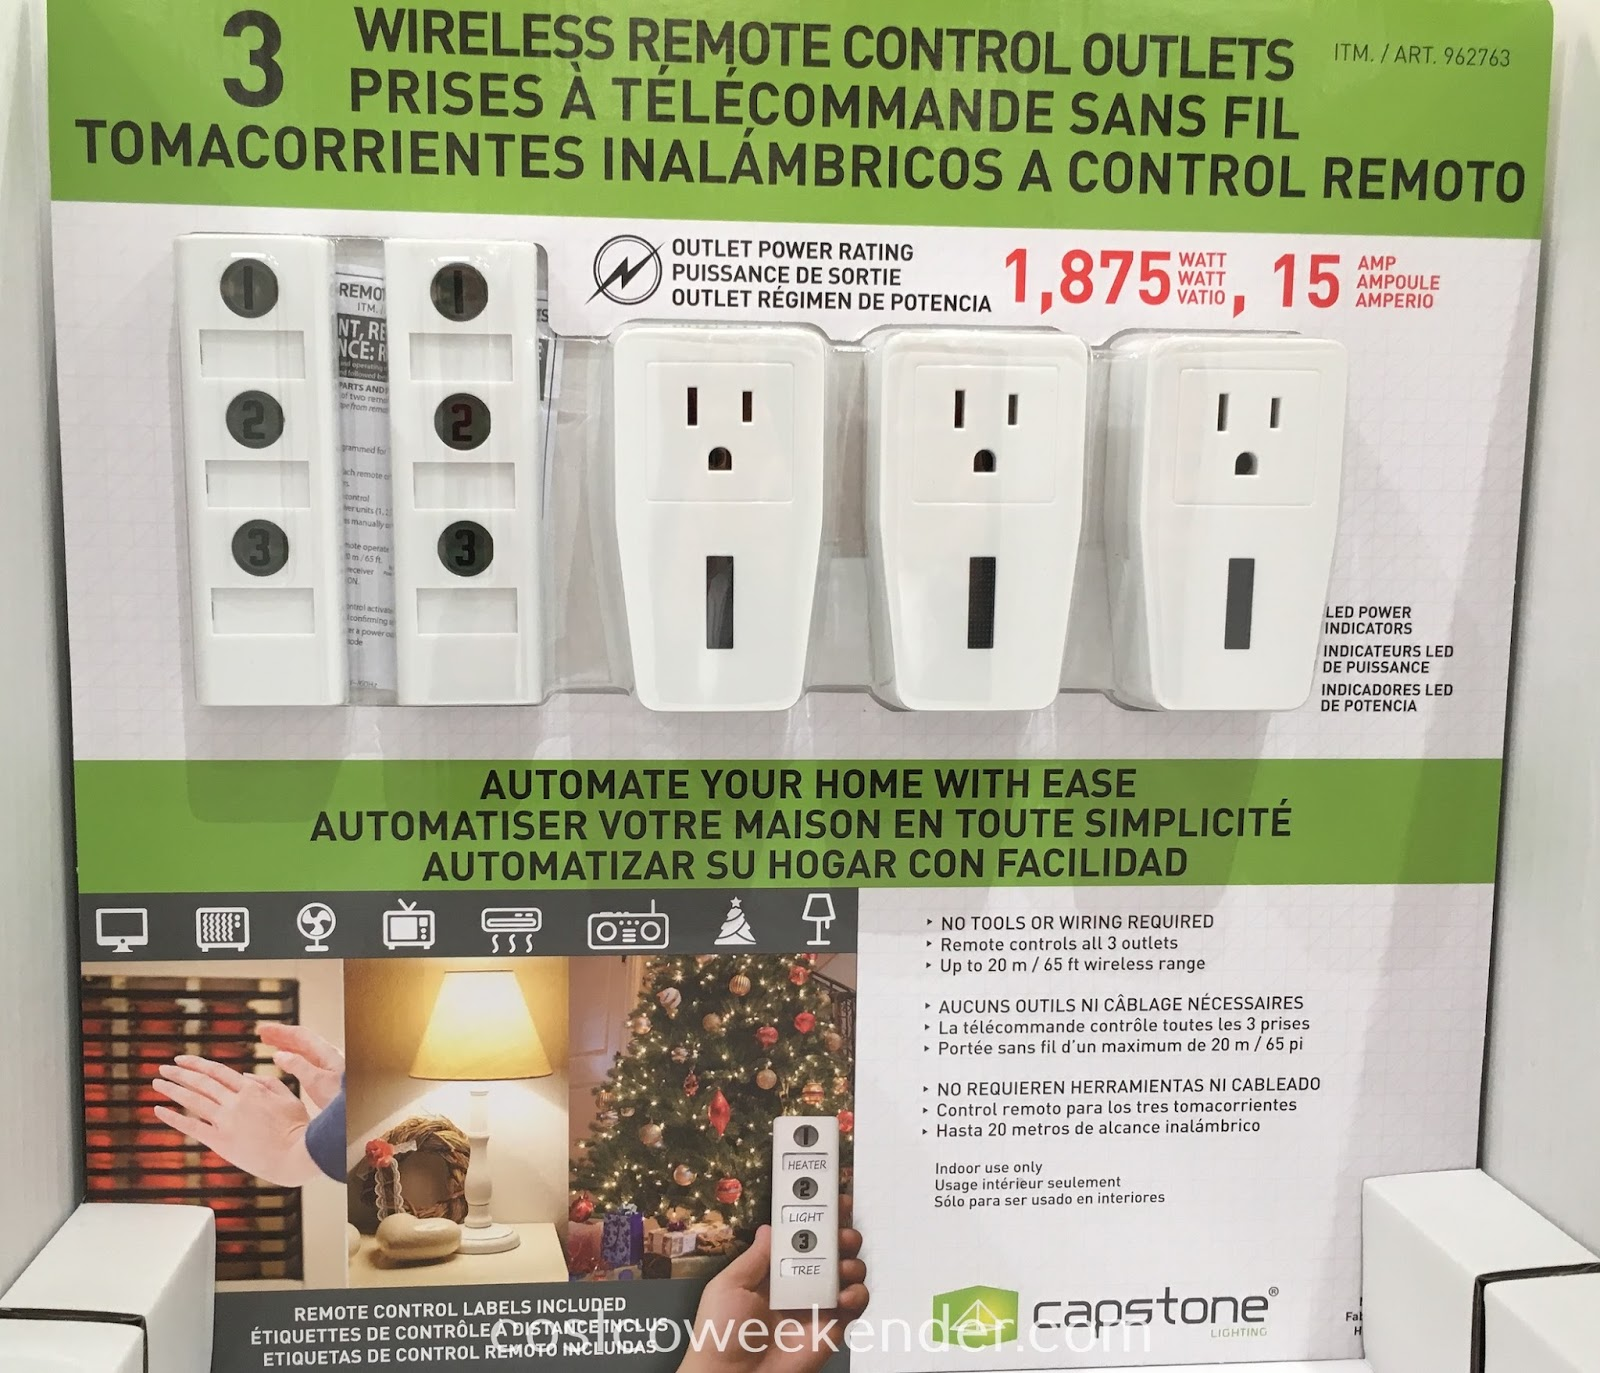 Automate your home with ease with the Capstone Lighting Wireless Remote Control Outlets